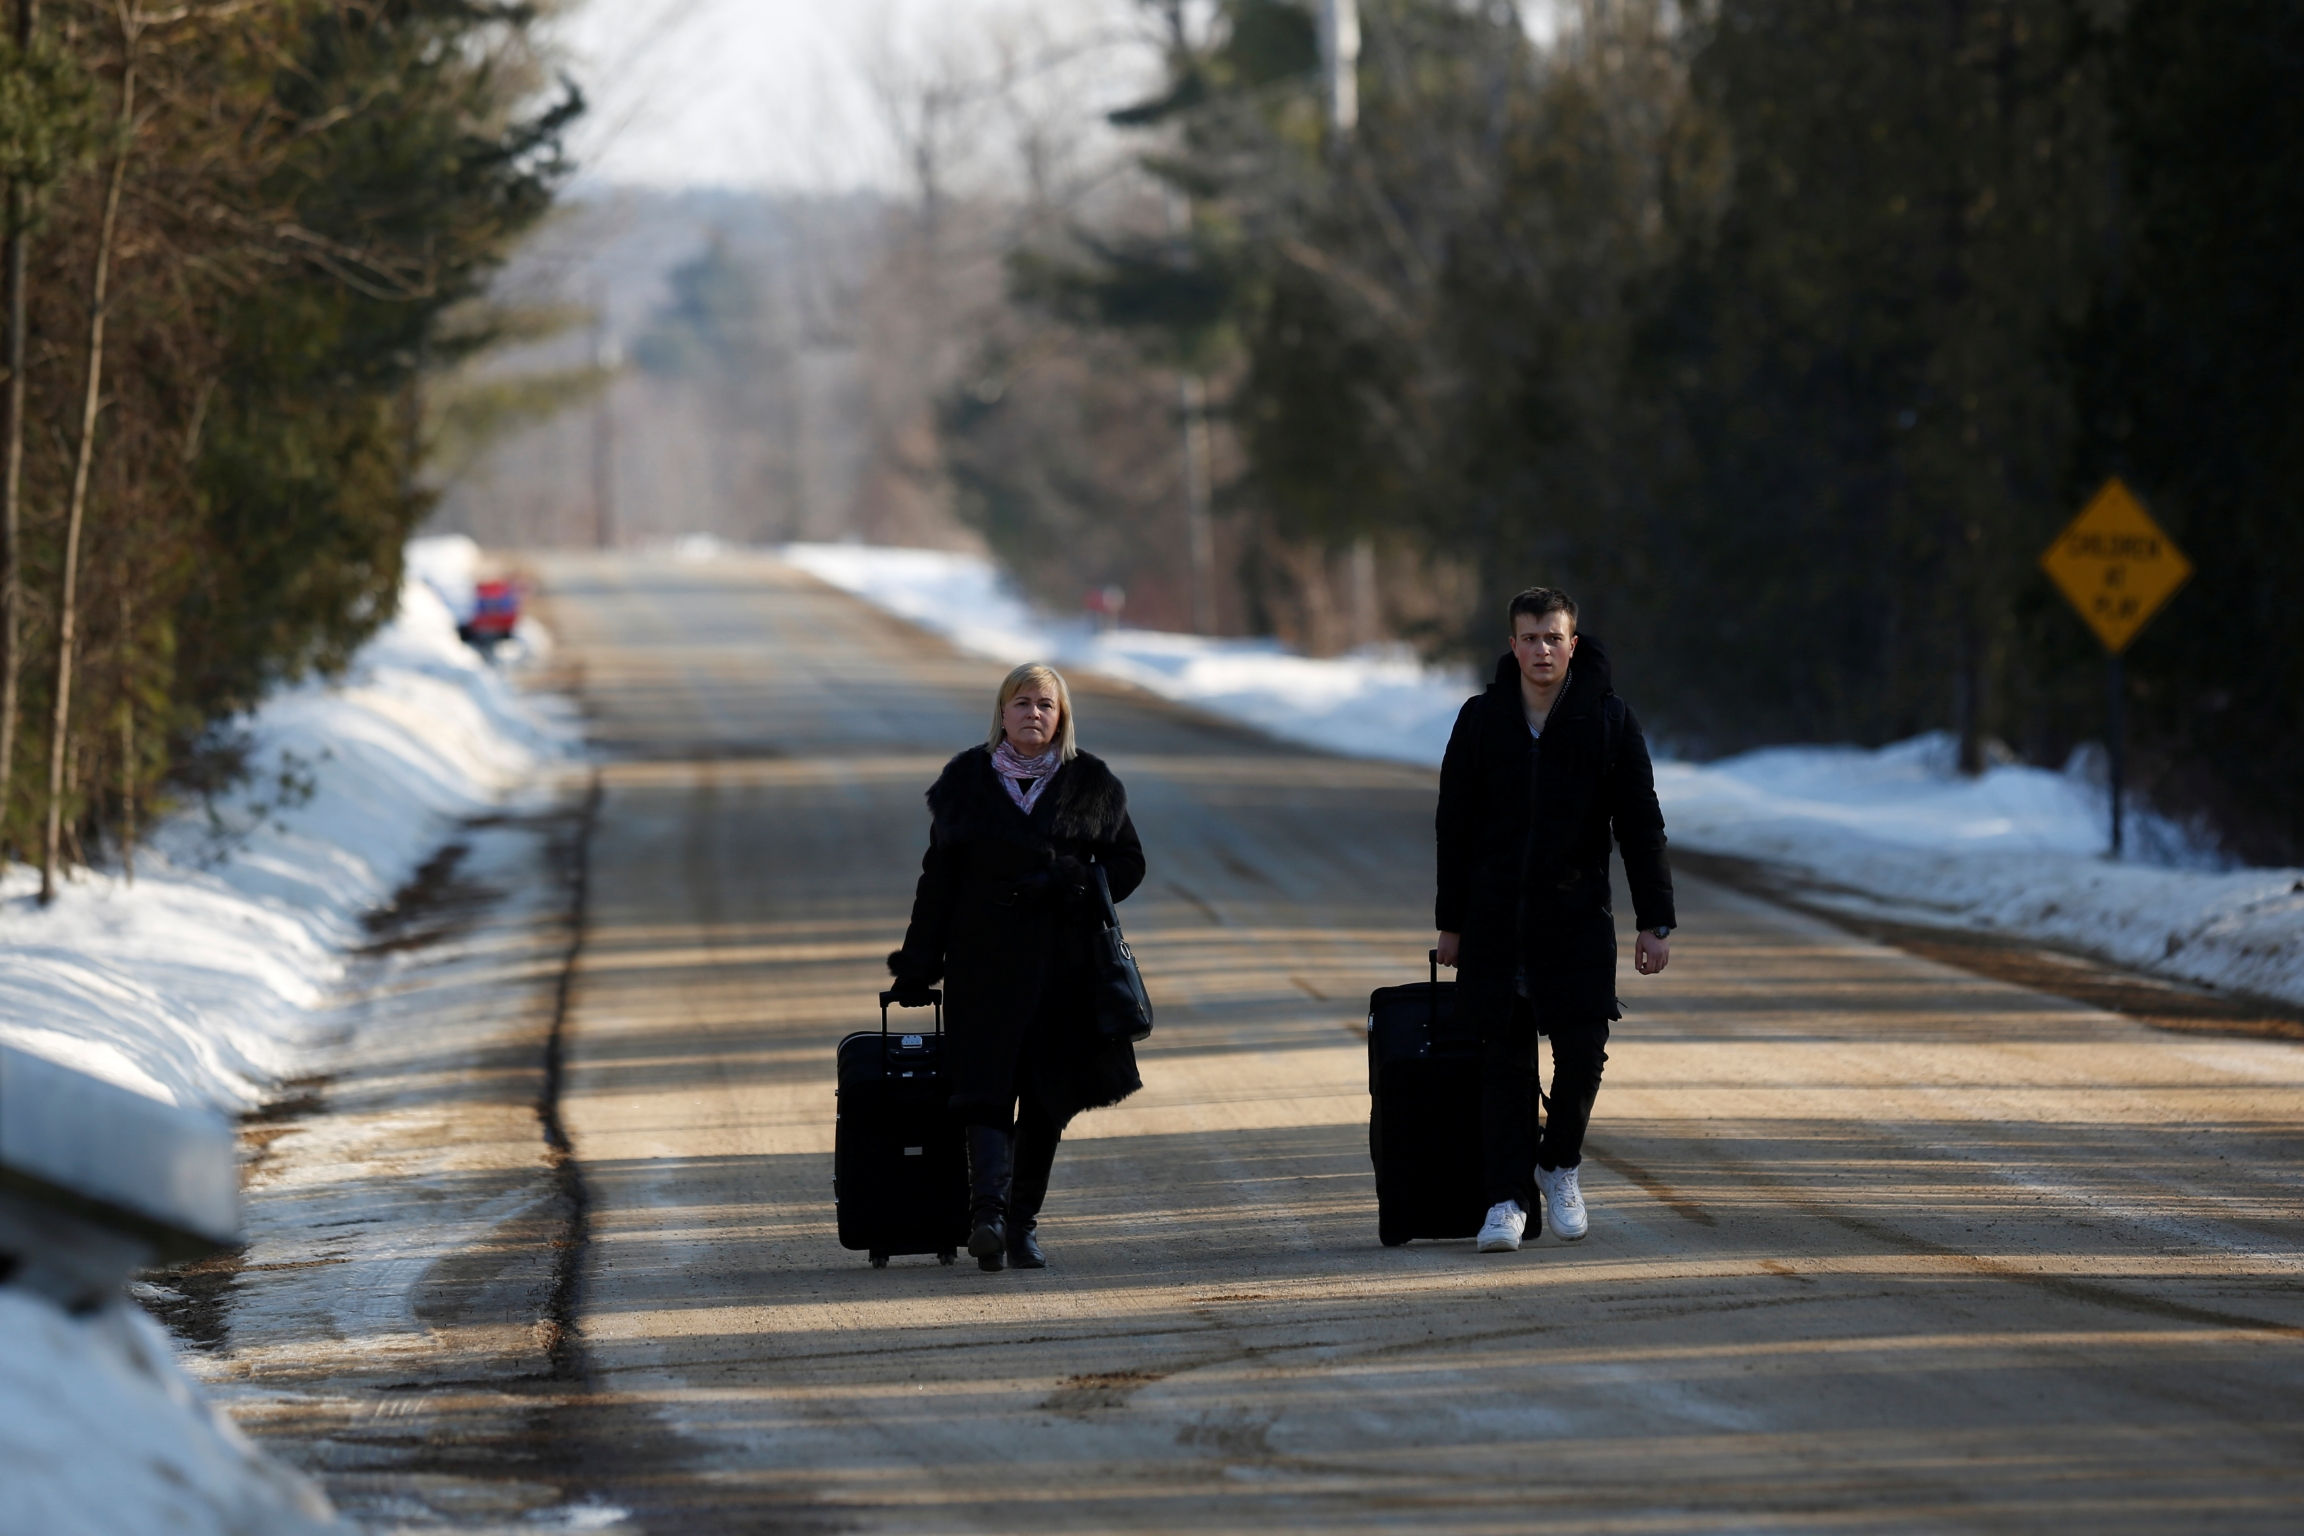 Two people walk with luggage along an empty road